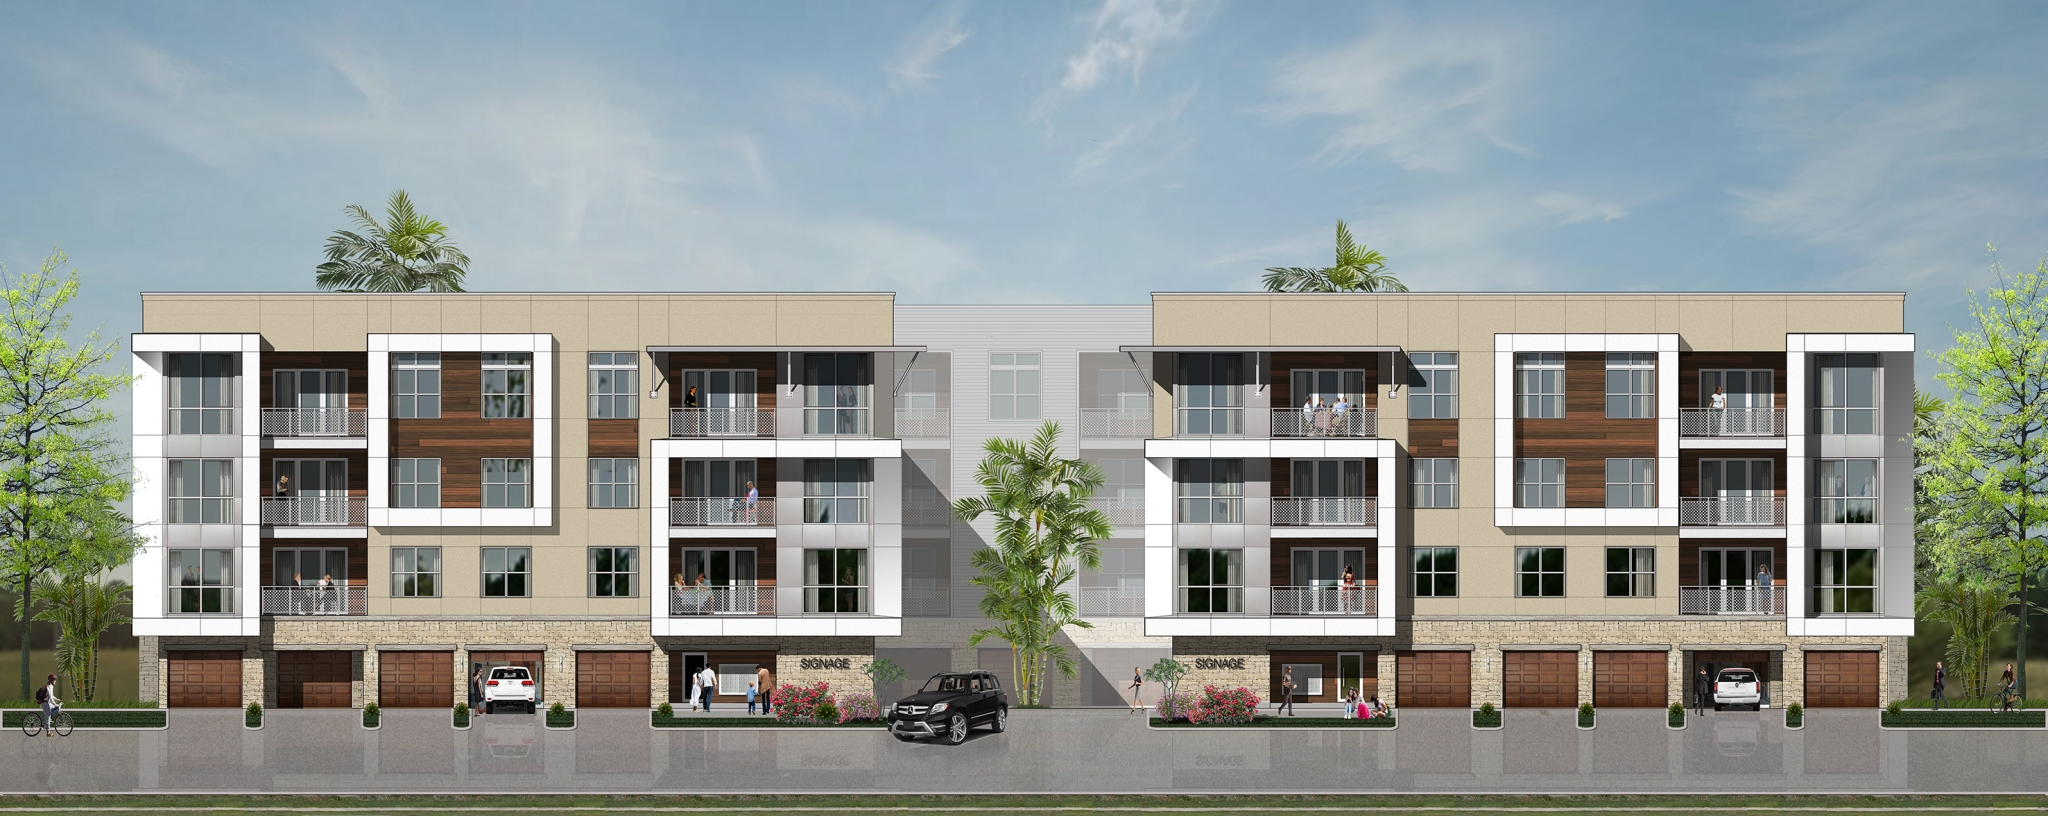 Hines enters san antonio apartment market with new project for Apartment complex designs